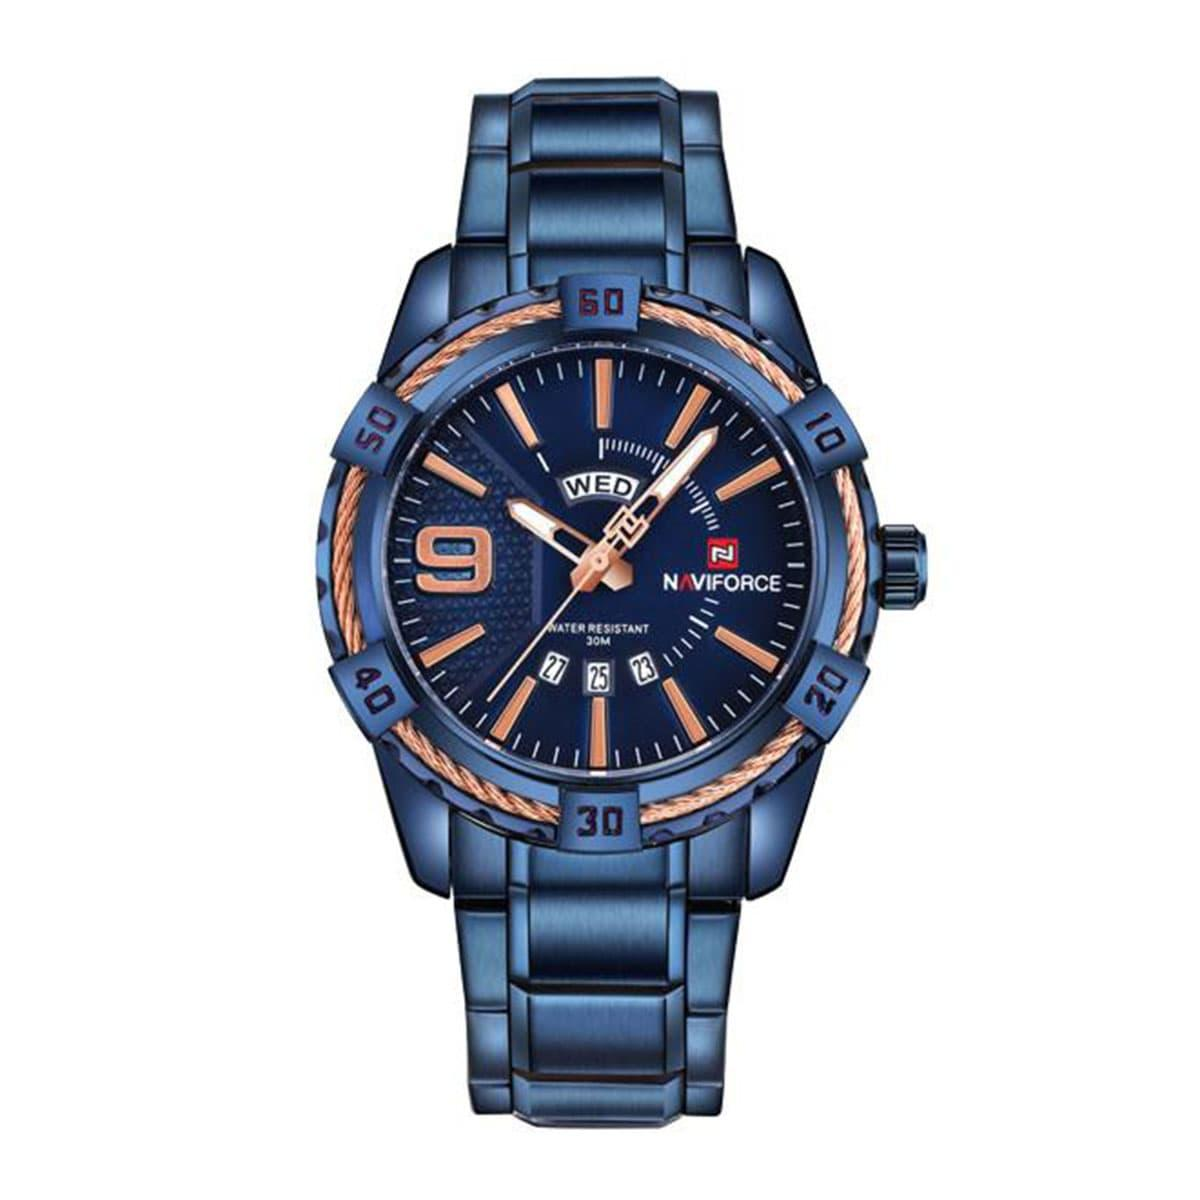 Naviforce NF9117 - Royal Blue Stainless Steel Analog Watch for Men - Royal Blue